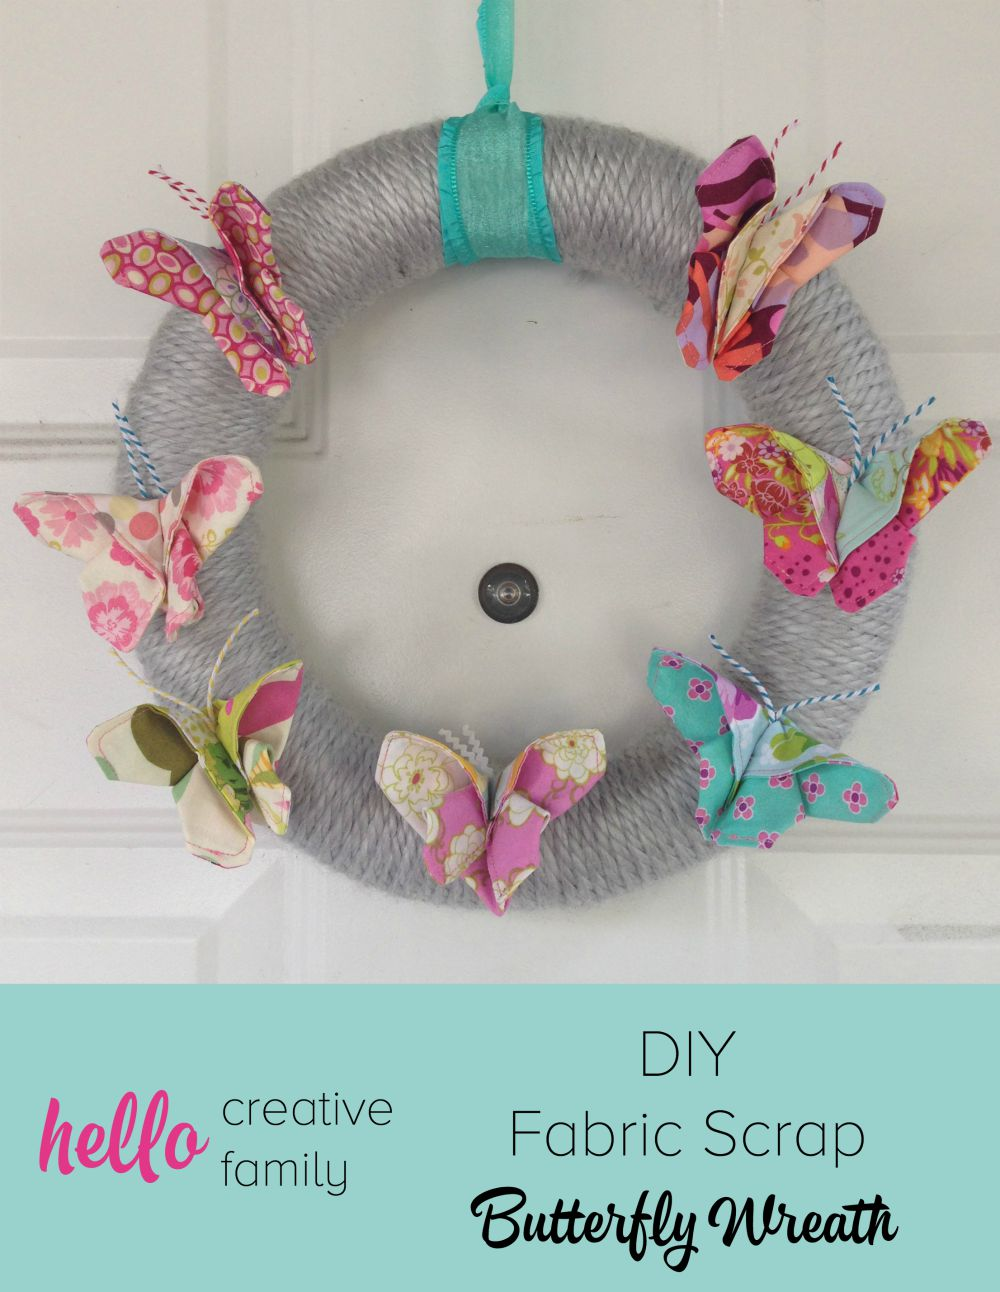 Looking for a fun project to make with fabric scraps Check out this DIY Fabric Scrap Butterfly Wreath. So cute for hanging on your front door.